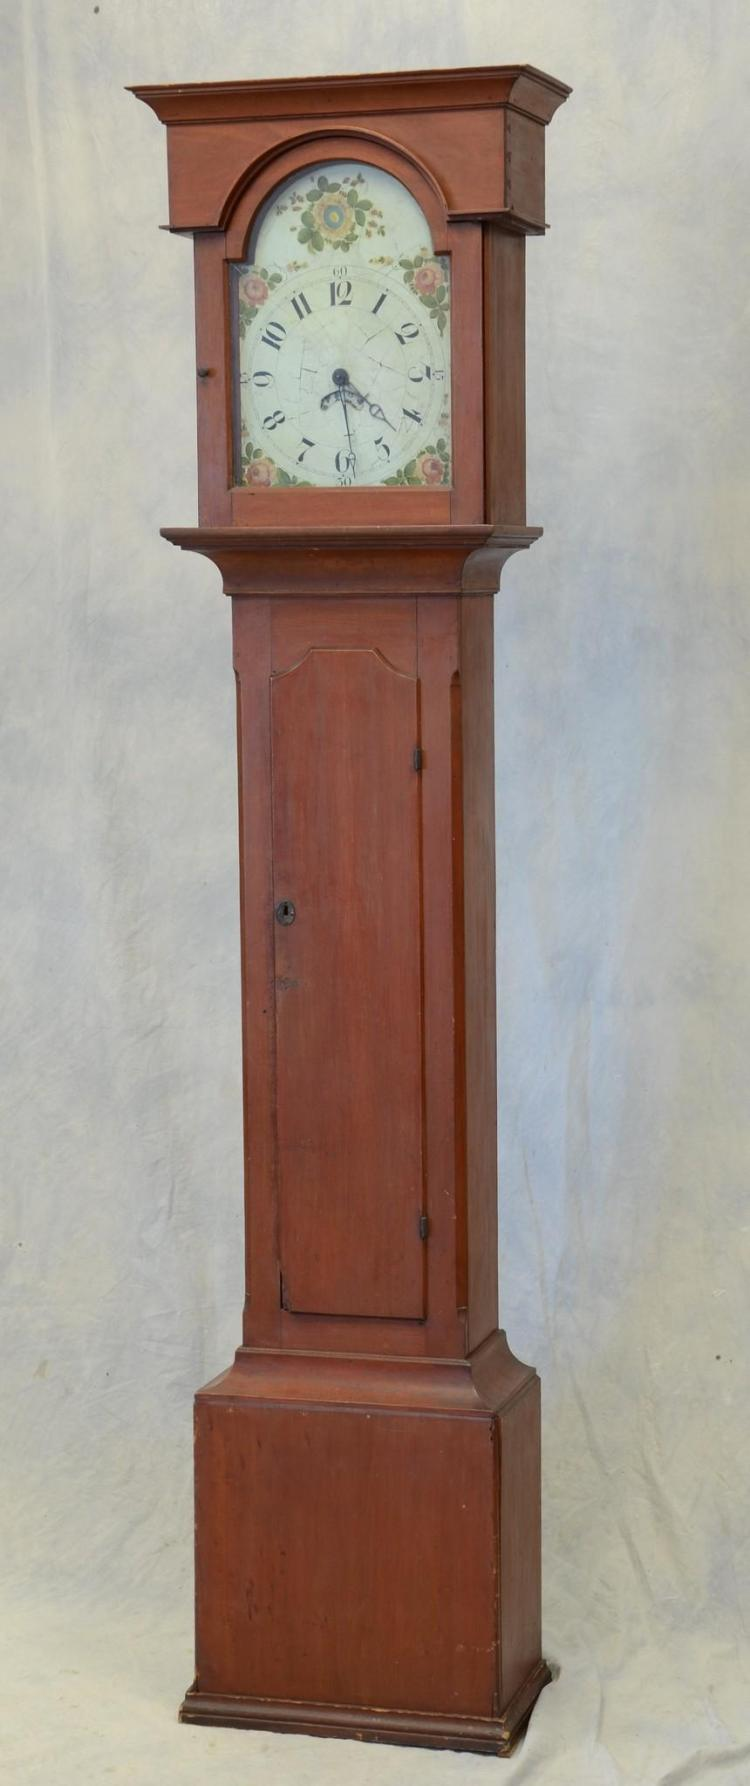 Joseph Eberman, Lancaster Co, Red painted softwood 30 hour tall clock, painted dial, flat top bonnet, c 1820, 87 1/2